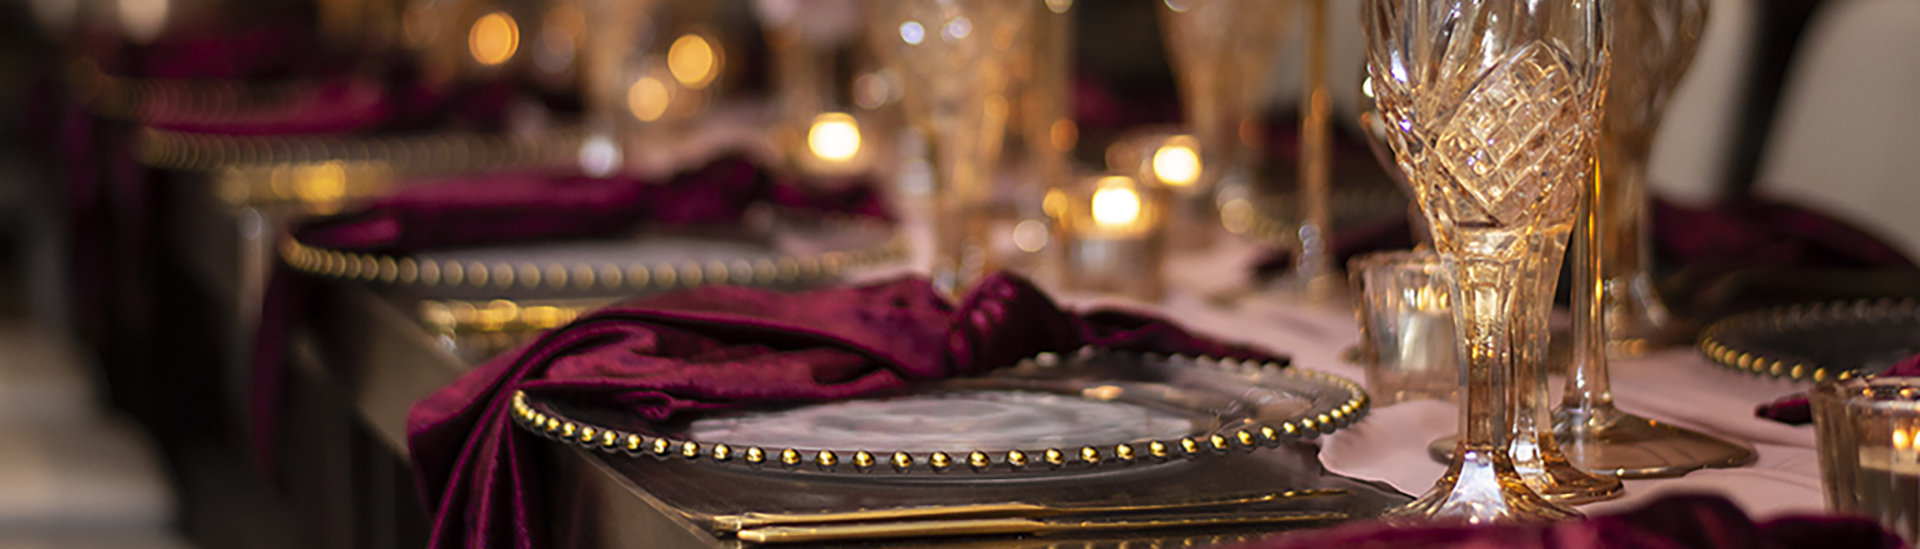 blackbird-wedding-reception-styling-amber-crystal-stemware-gold-beaded-glass-charger-plates-burgundy-velvet-napkins-banner